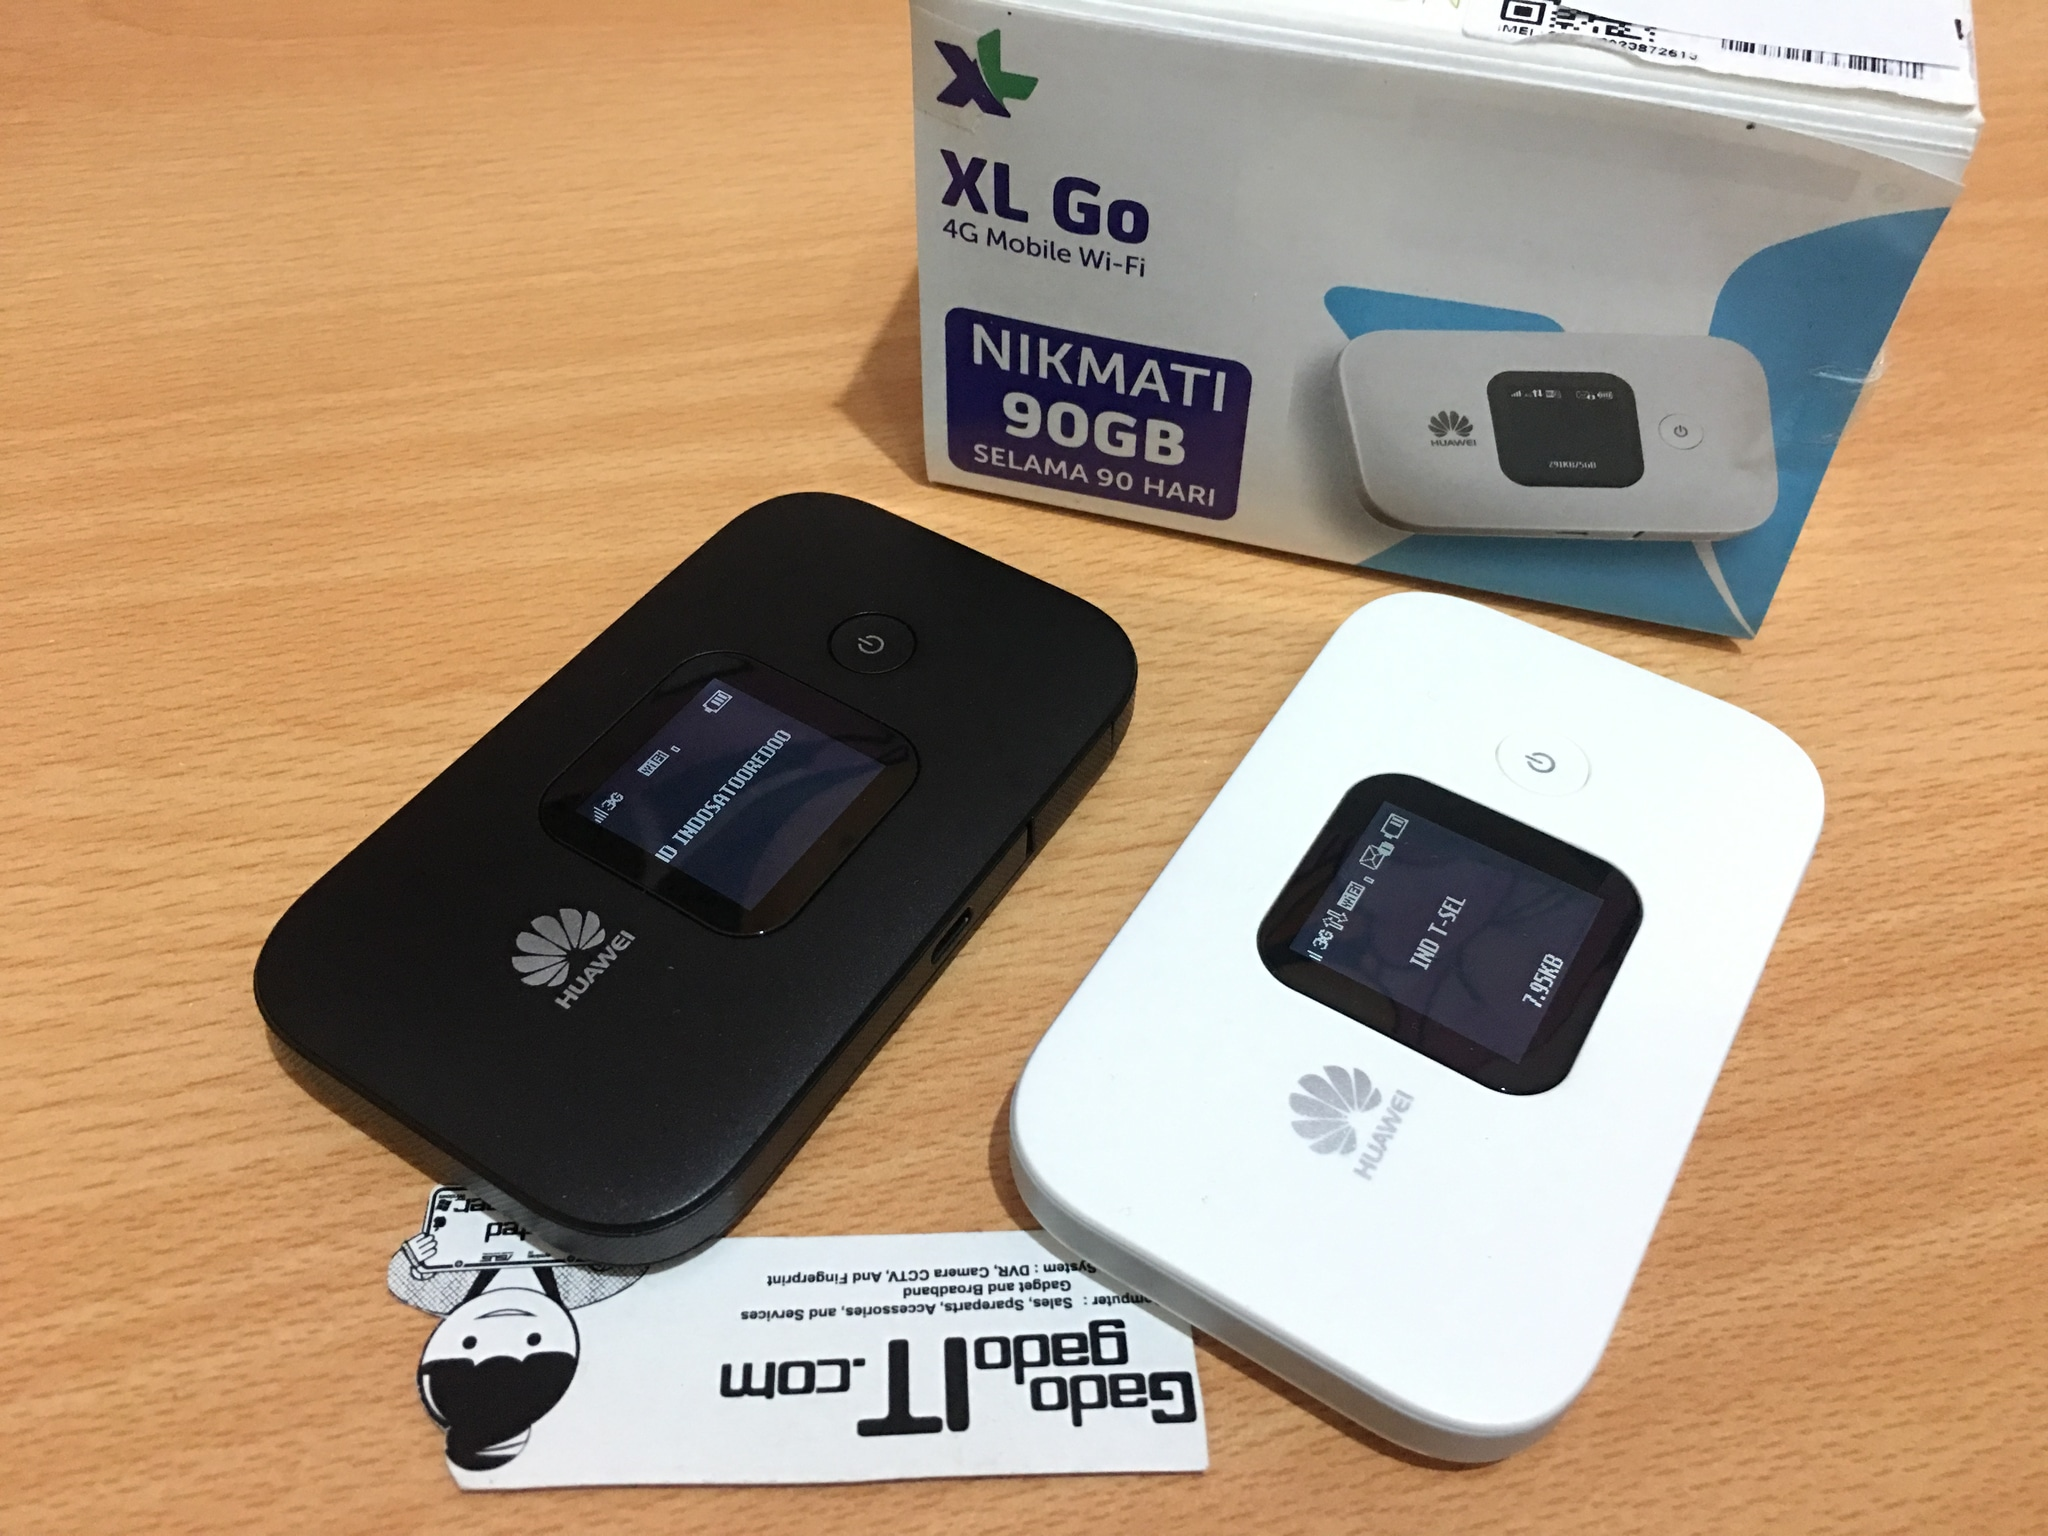 Jual Mifi Router Huawei E5577 Speed 4g Lte Xl Go Bundling 90gb Perdana 3bln Untuk Modem Unlock Gado It Tokopedia